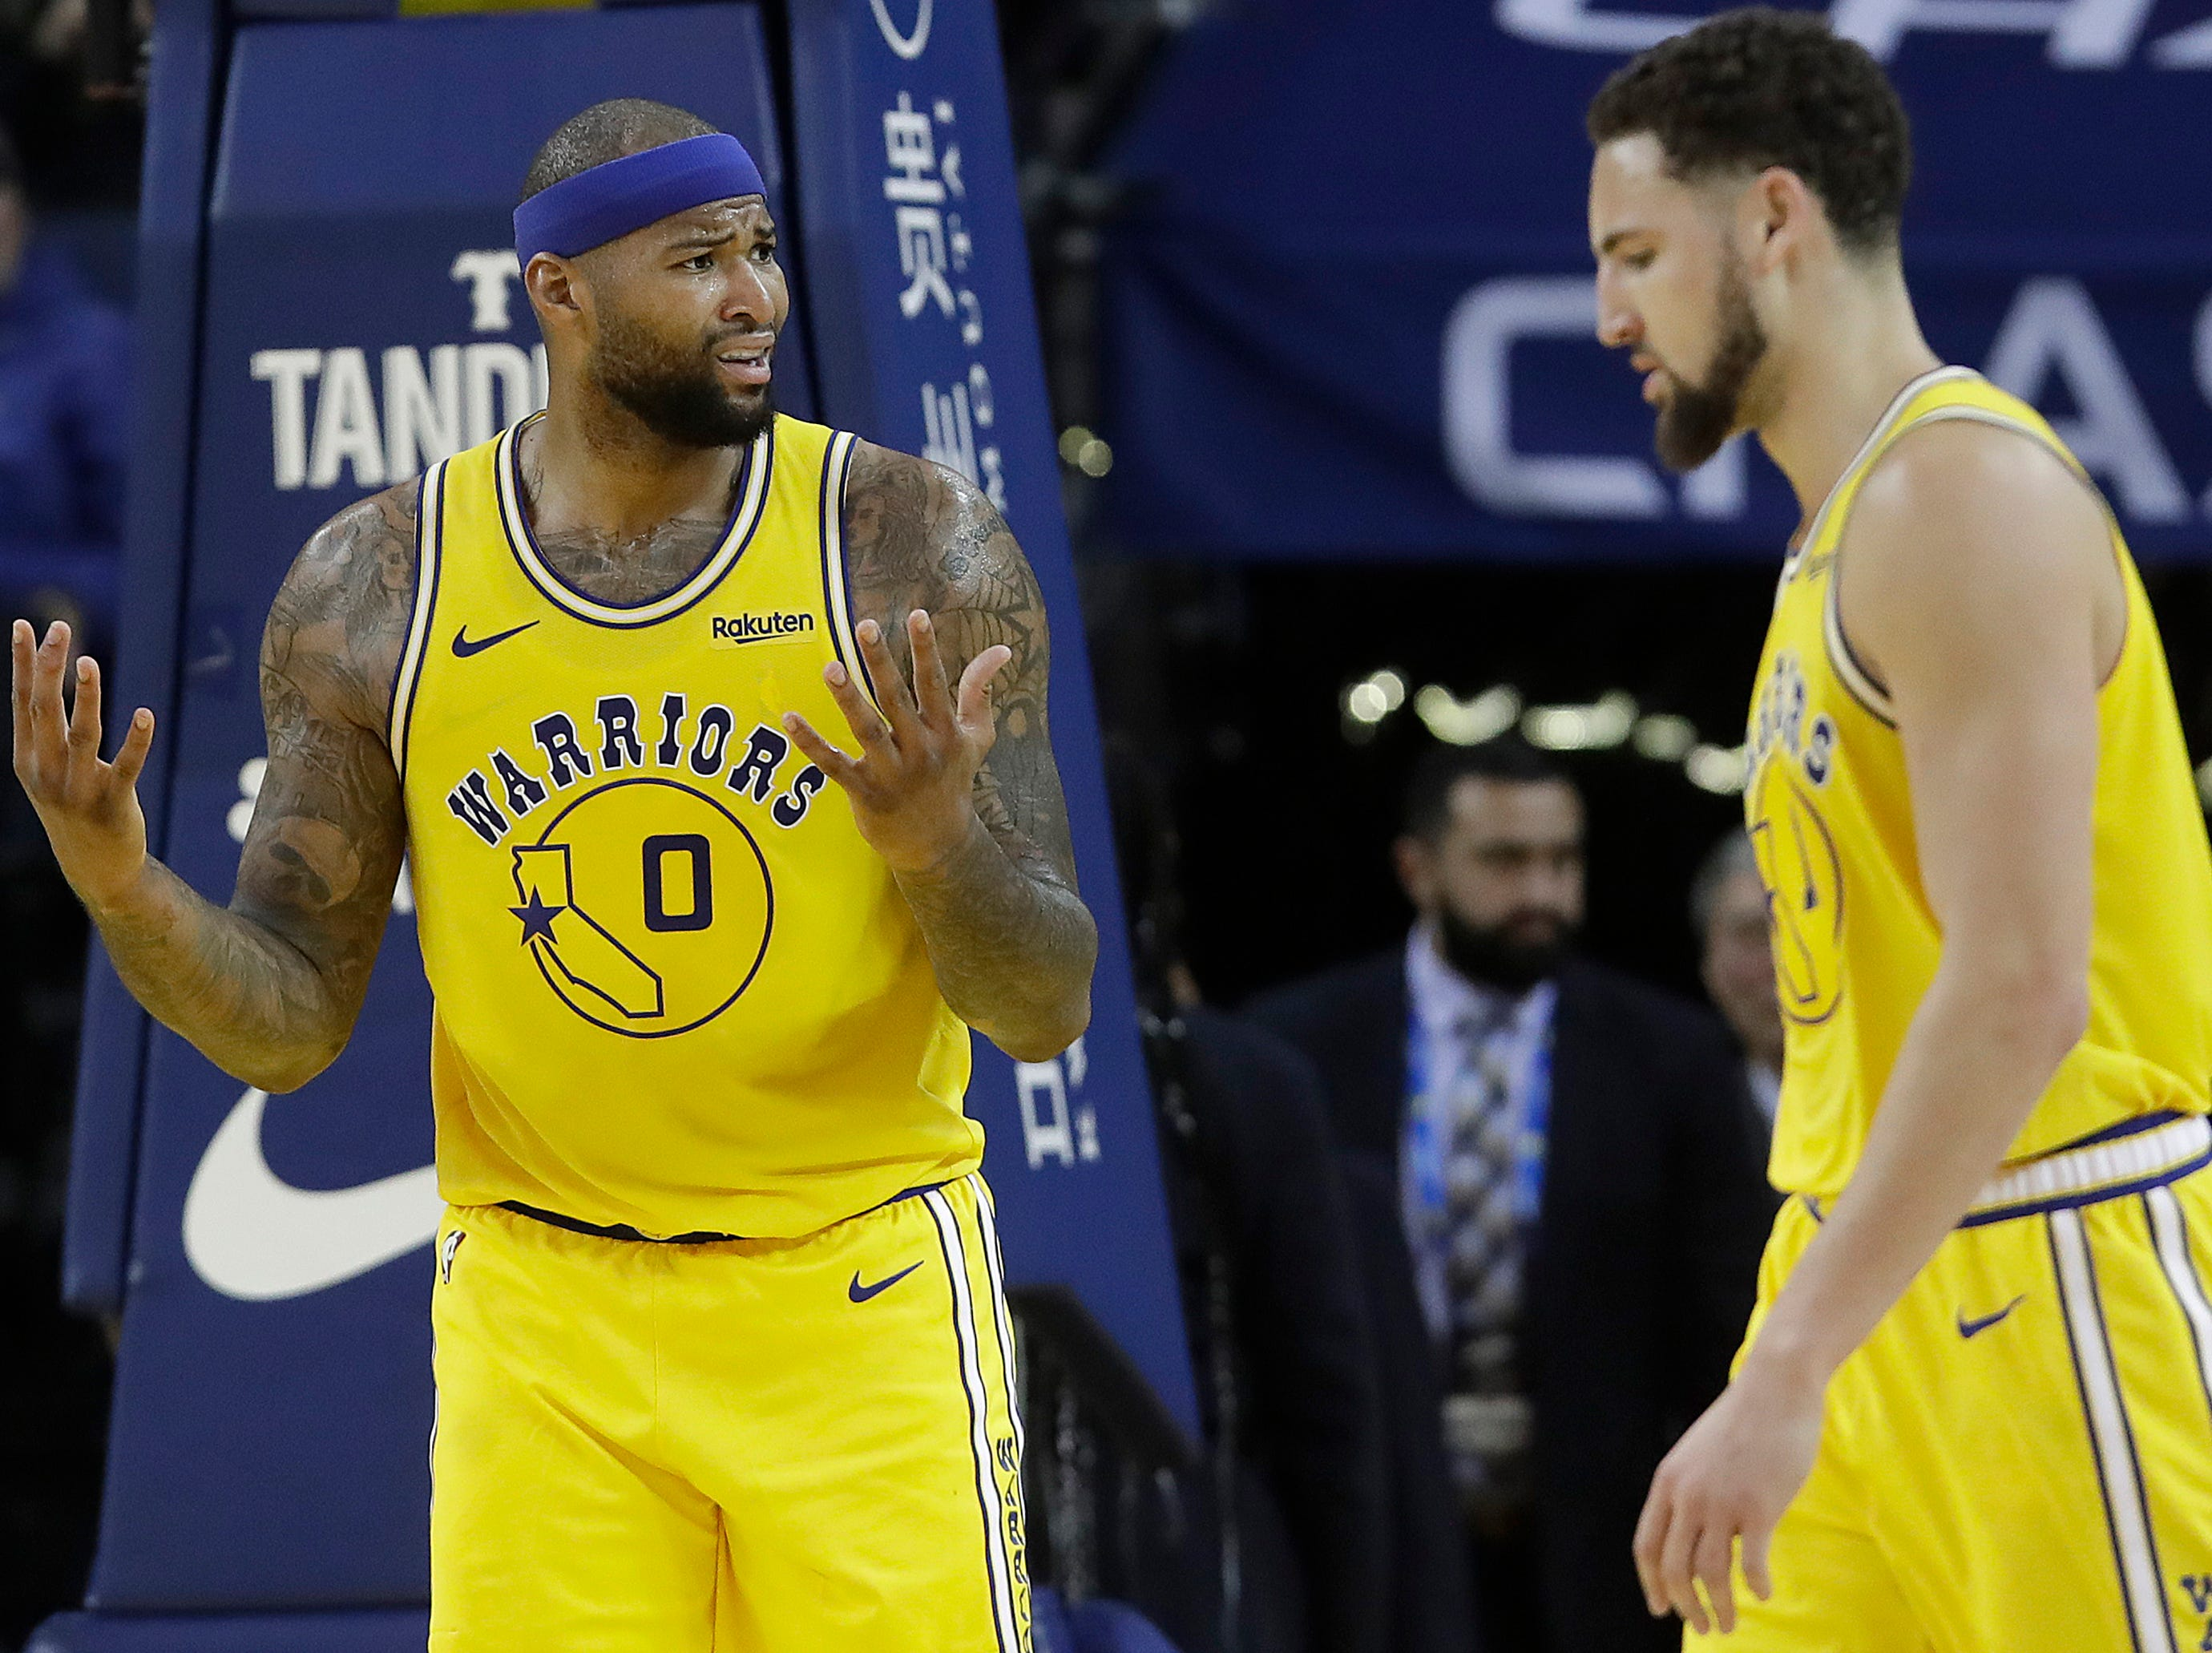 Golden State Warriors center DeMarcus Cousins, left, reacts to an official's call next to Klay Thompson during the second half of an NBA basketball game against the Phoenix Suns in Oakland, Calif., Sunday, March 10, 2019. (AP Photo/Jeff Chiu)